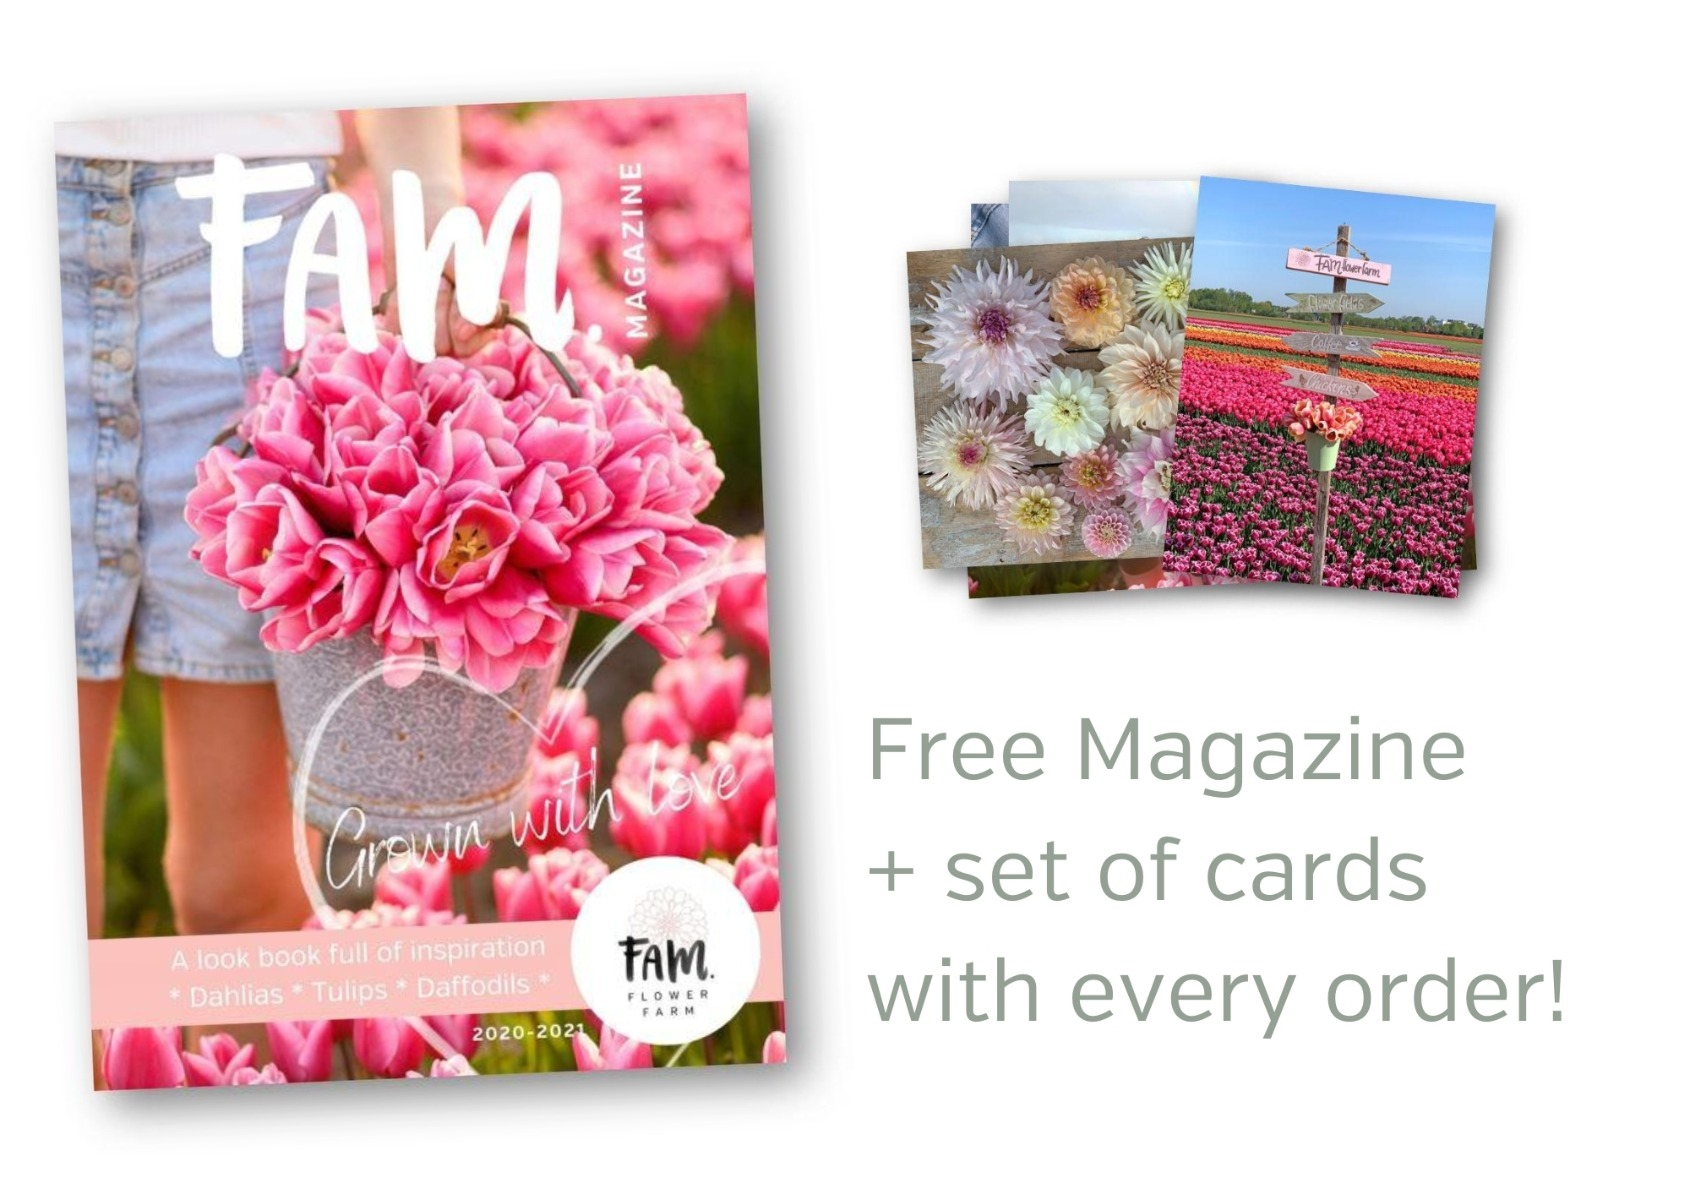 free magazine with every order